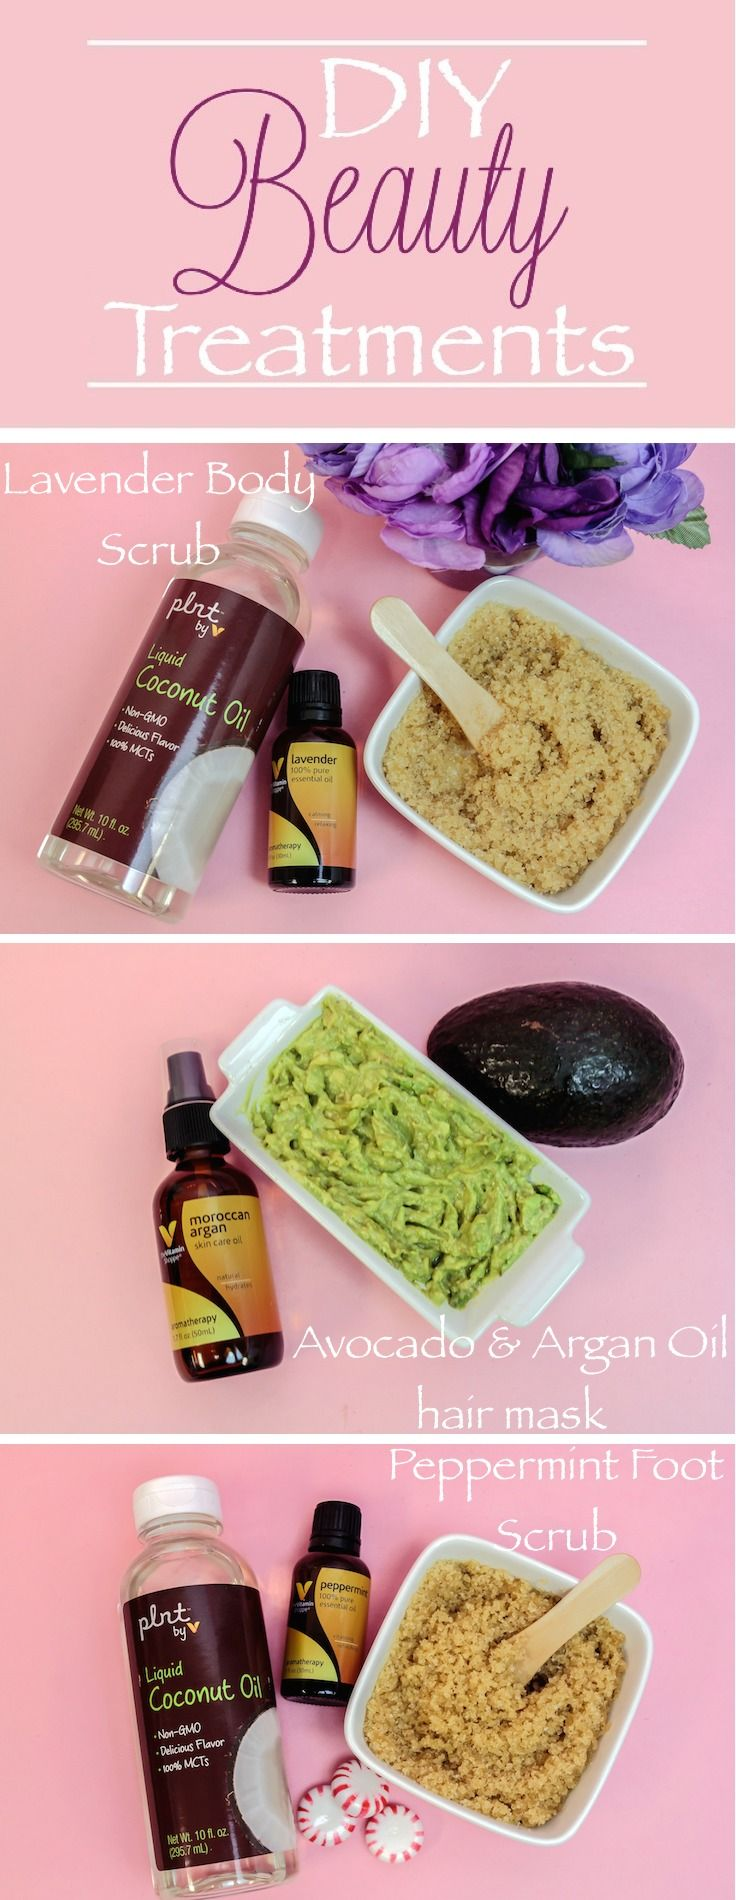 3 DIY Natural Beauty Recipes for Glowing Skin using Vitamin Shoppe's line of aromatherapy products and PLNT coconut oil